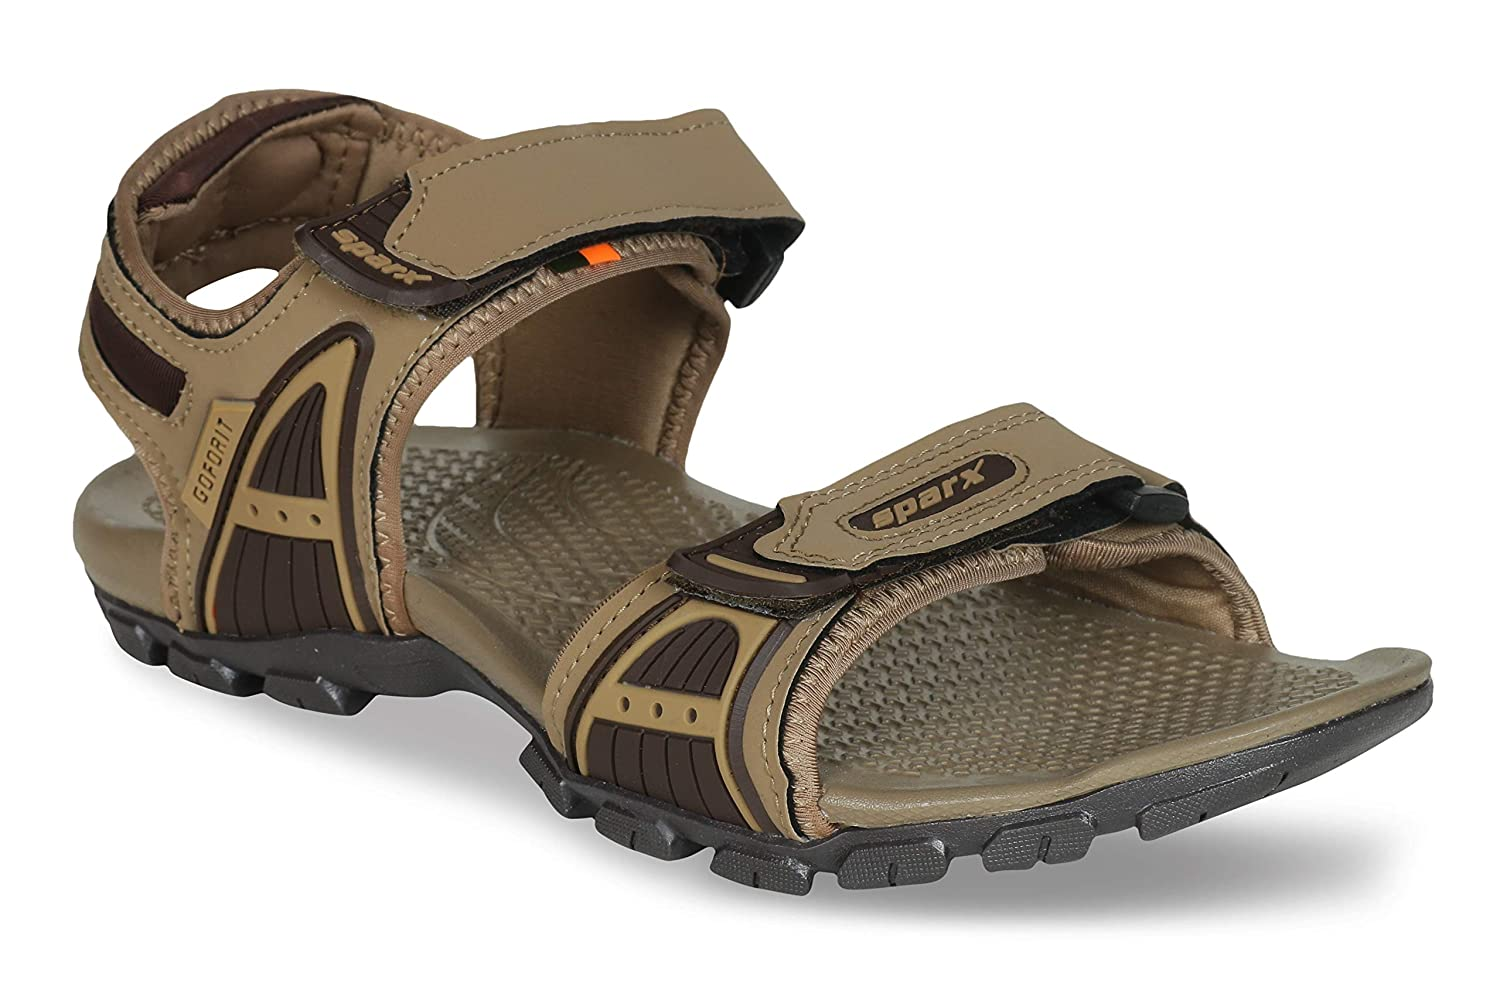 Sparx Floater Sandals for men India